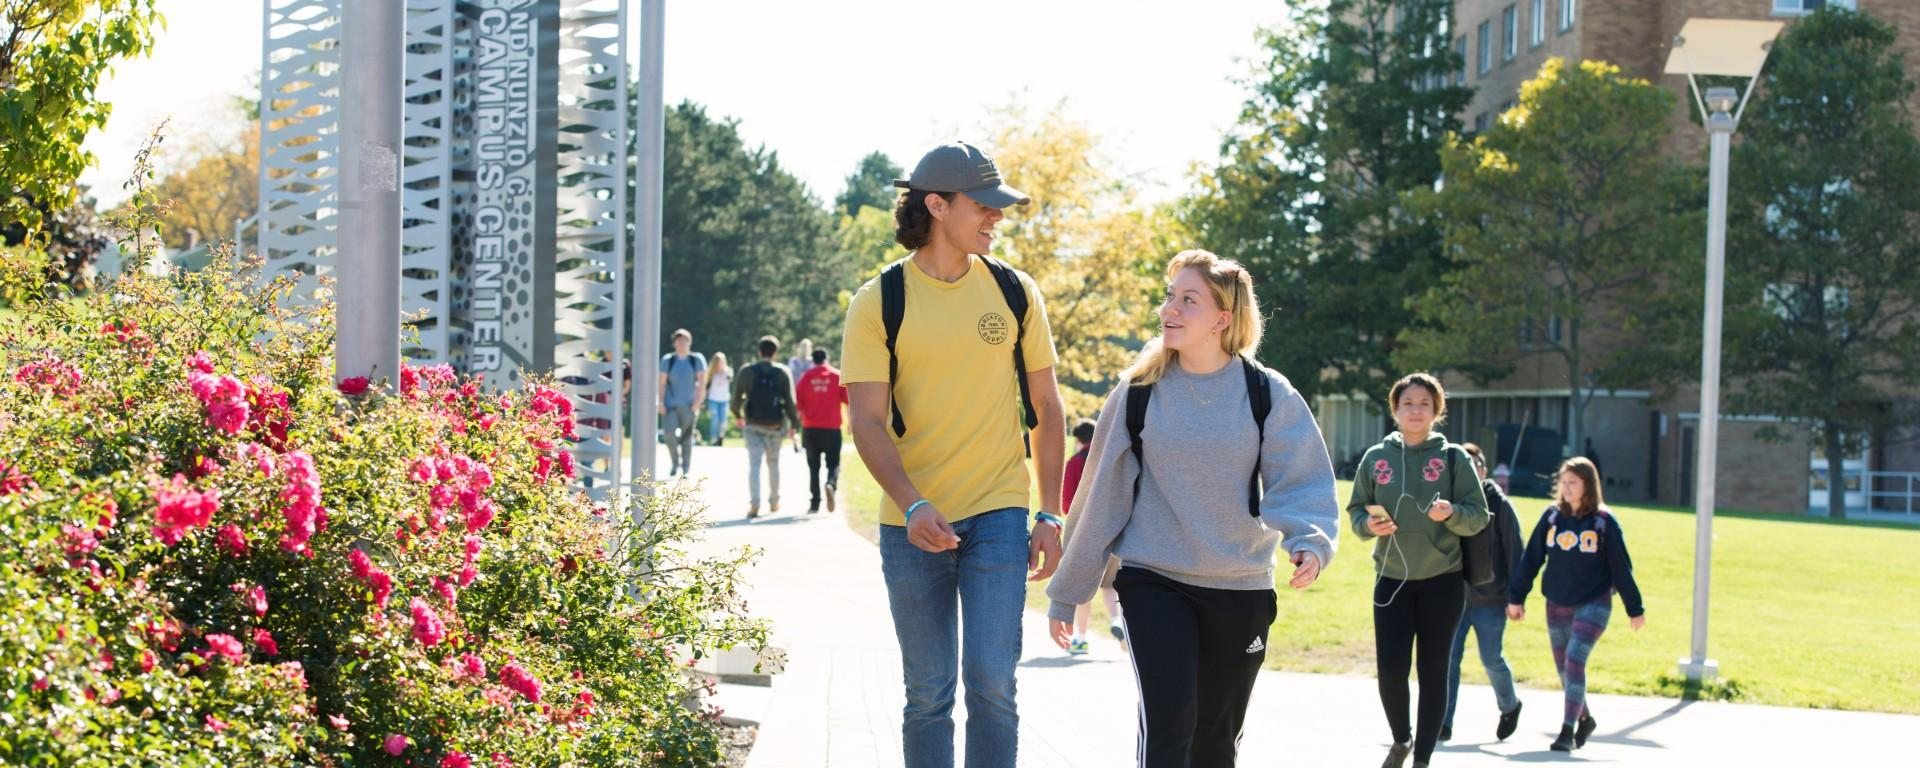 Students seen walking along the sidewalk in front of the Marano Campus Center